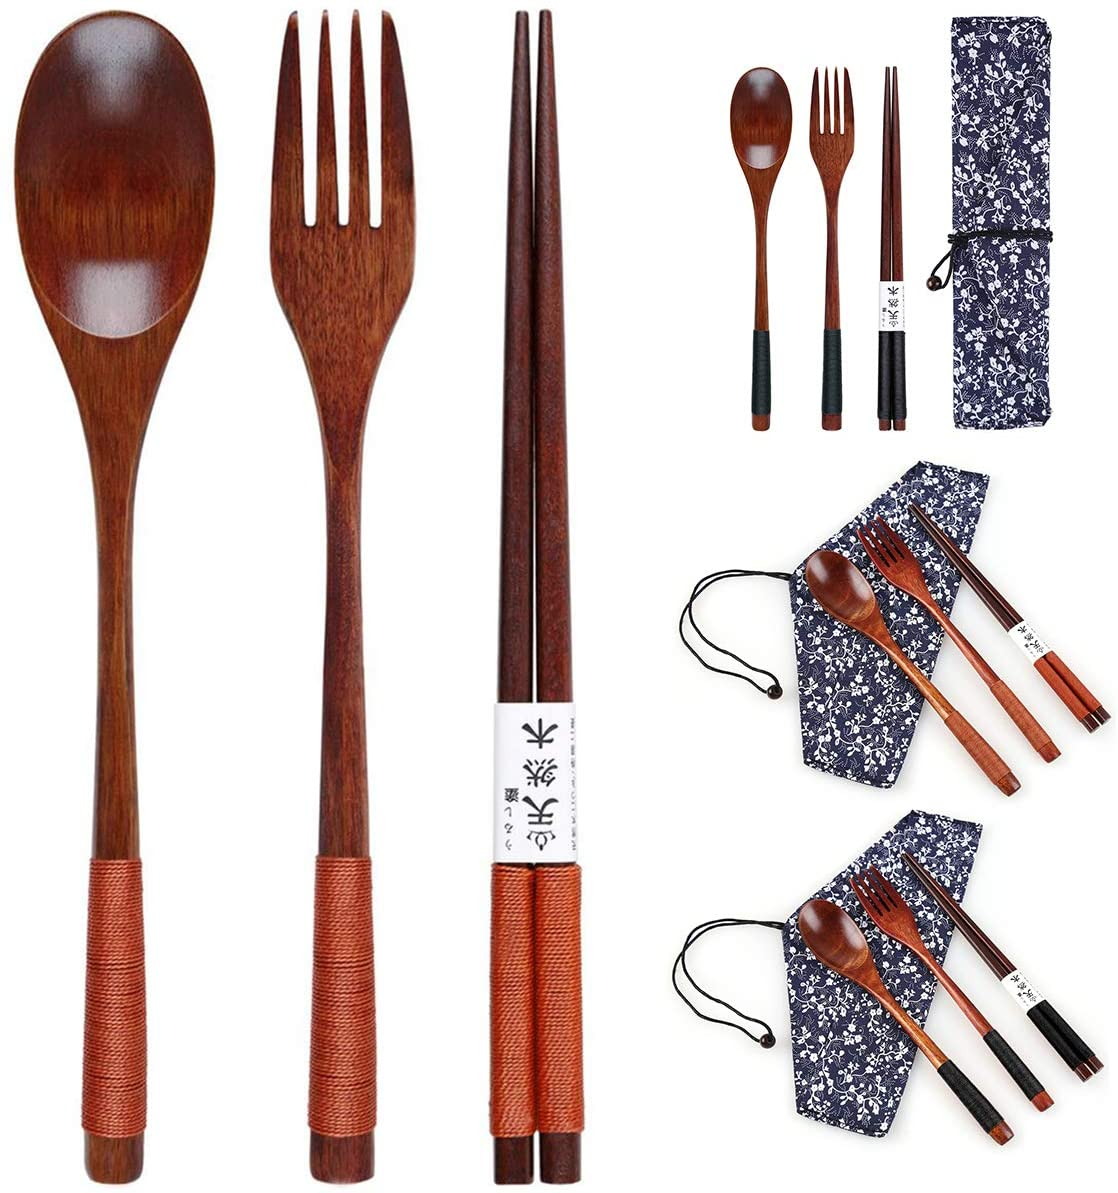 Fealay Wooden Cutlery Set Portable Eco Friendly Reusable Flatware Utensils Set Fork Spoon Chopsticks with Pouch for Camping Travel Office Lunch